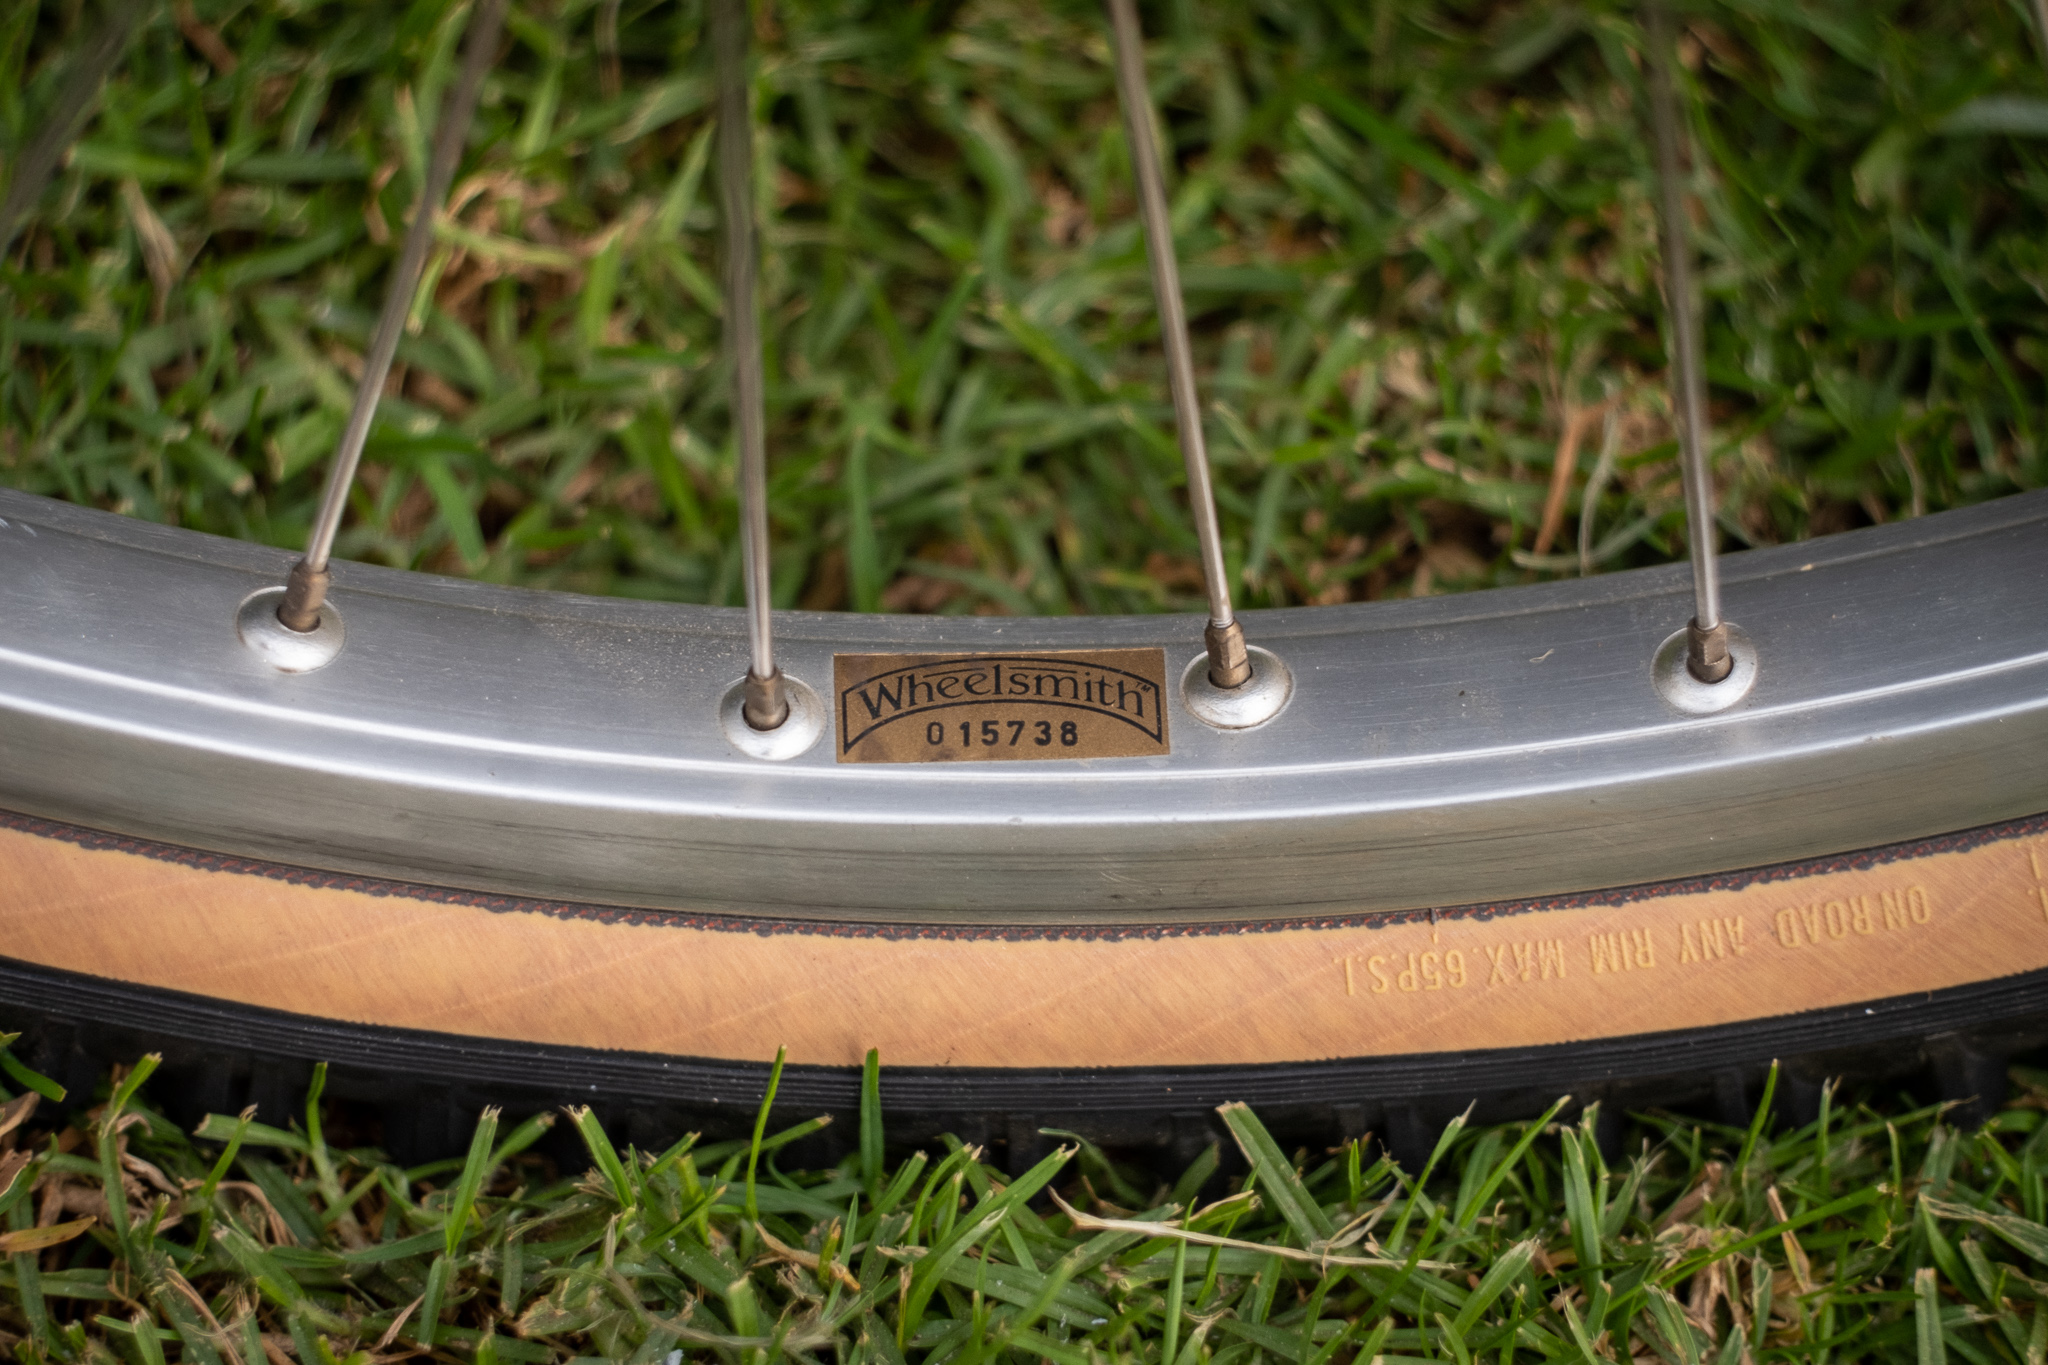 1981 Specialized Stumpjumper Wheelsmith wheel detail